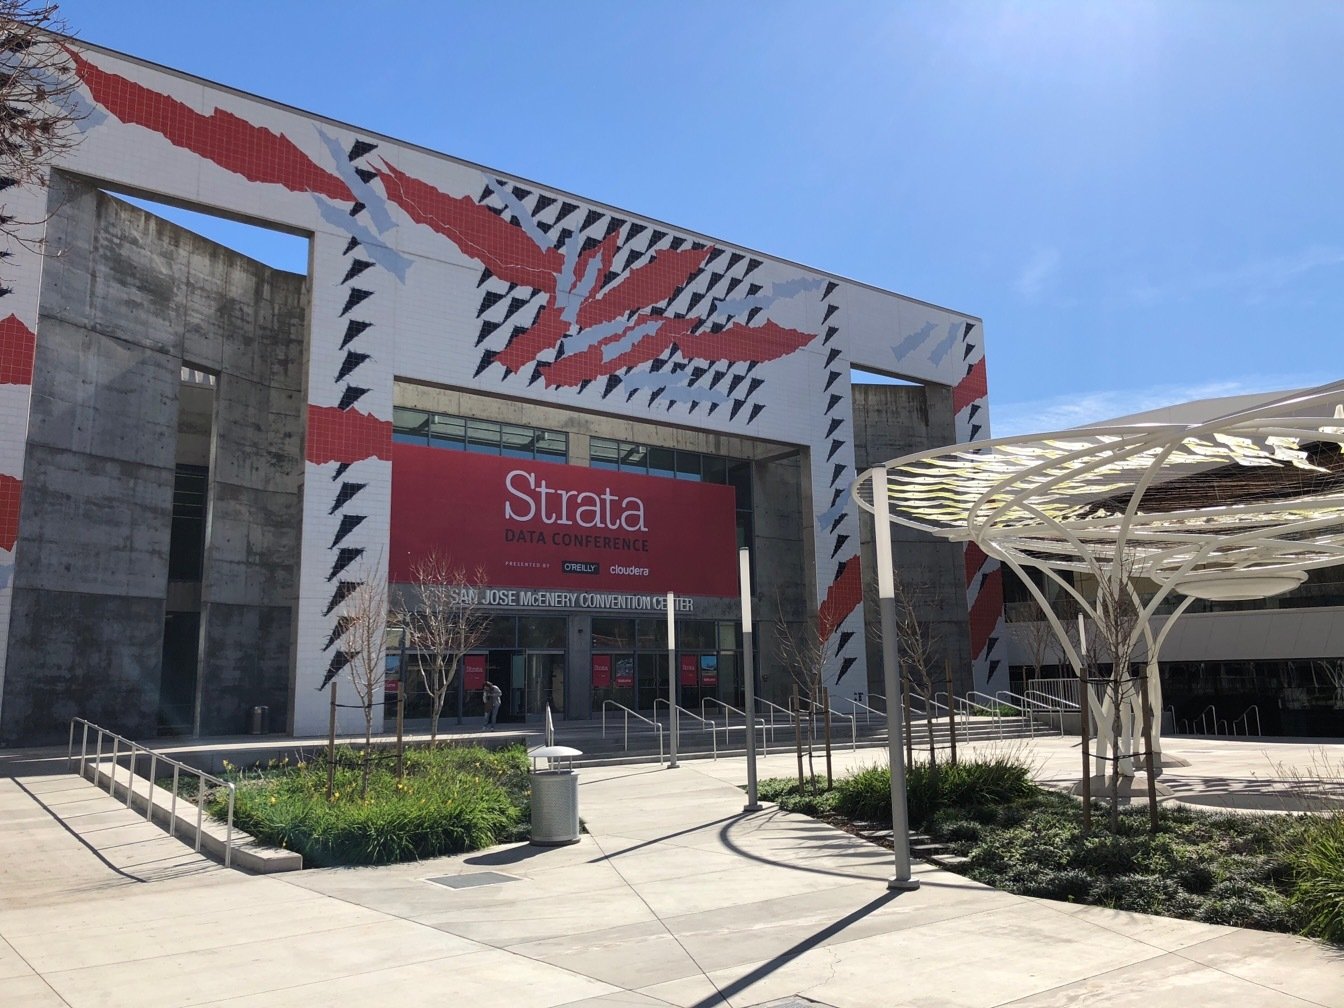 San Jose conference center with a red and white banner for the Strata Data Conference.